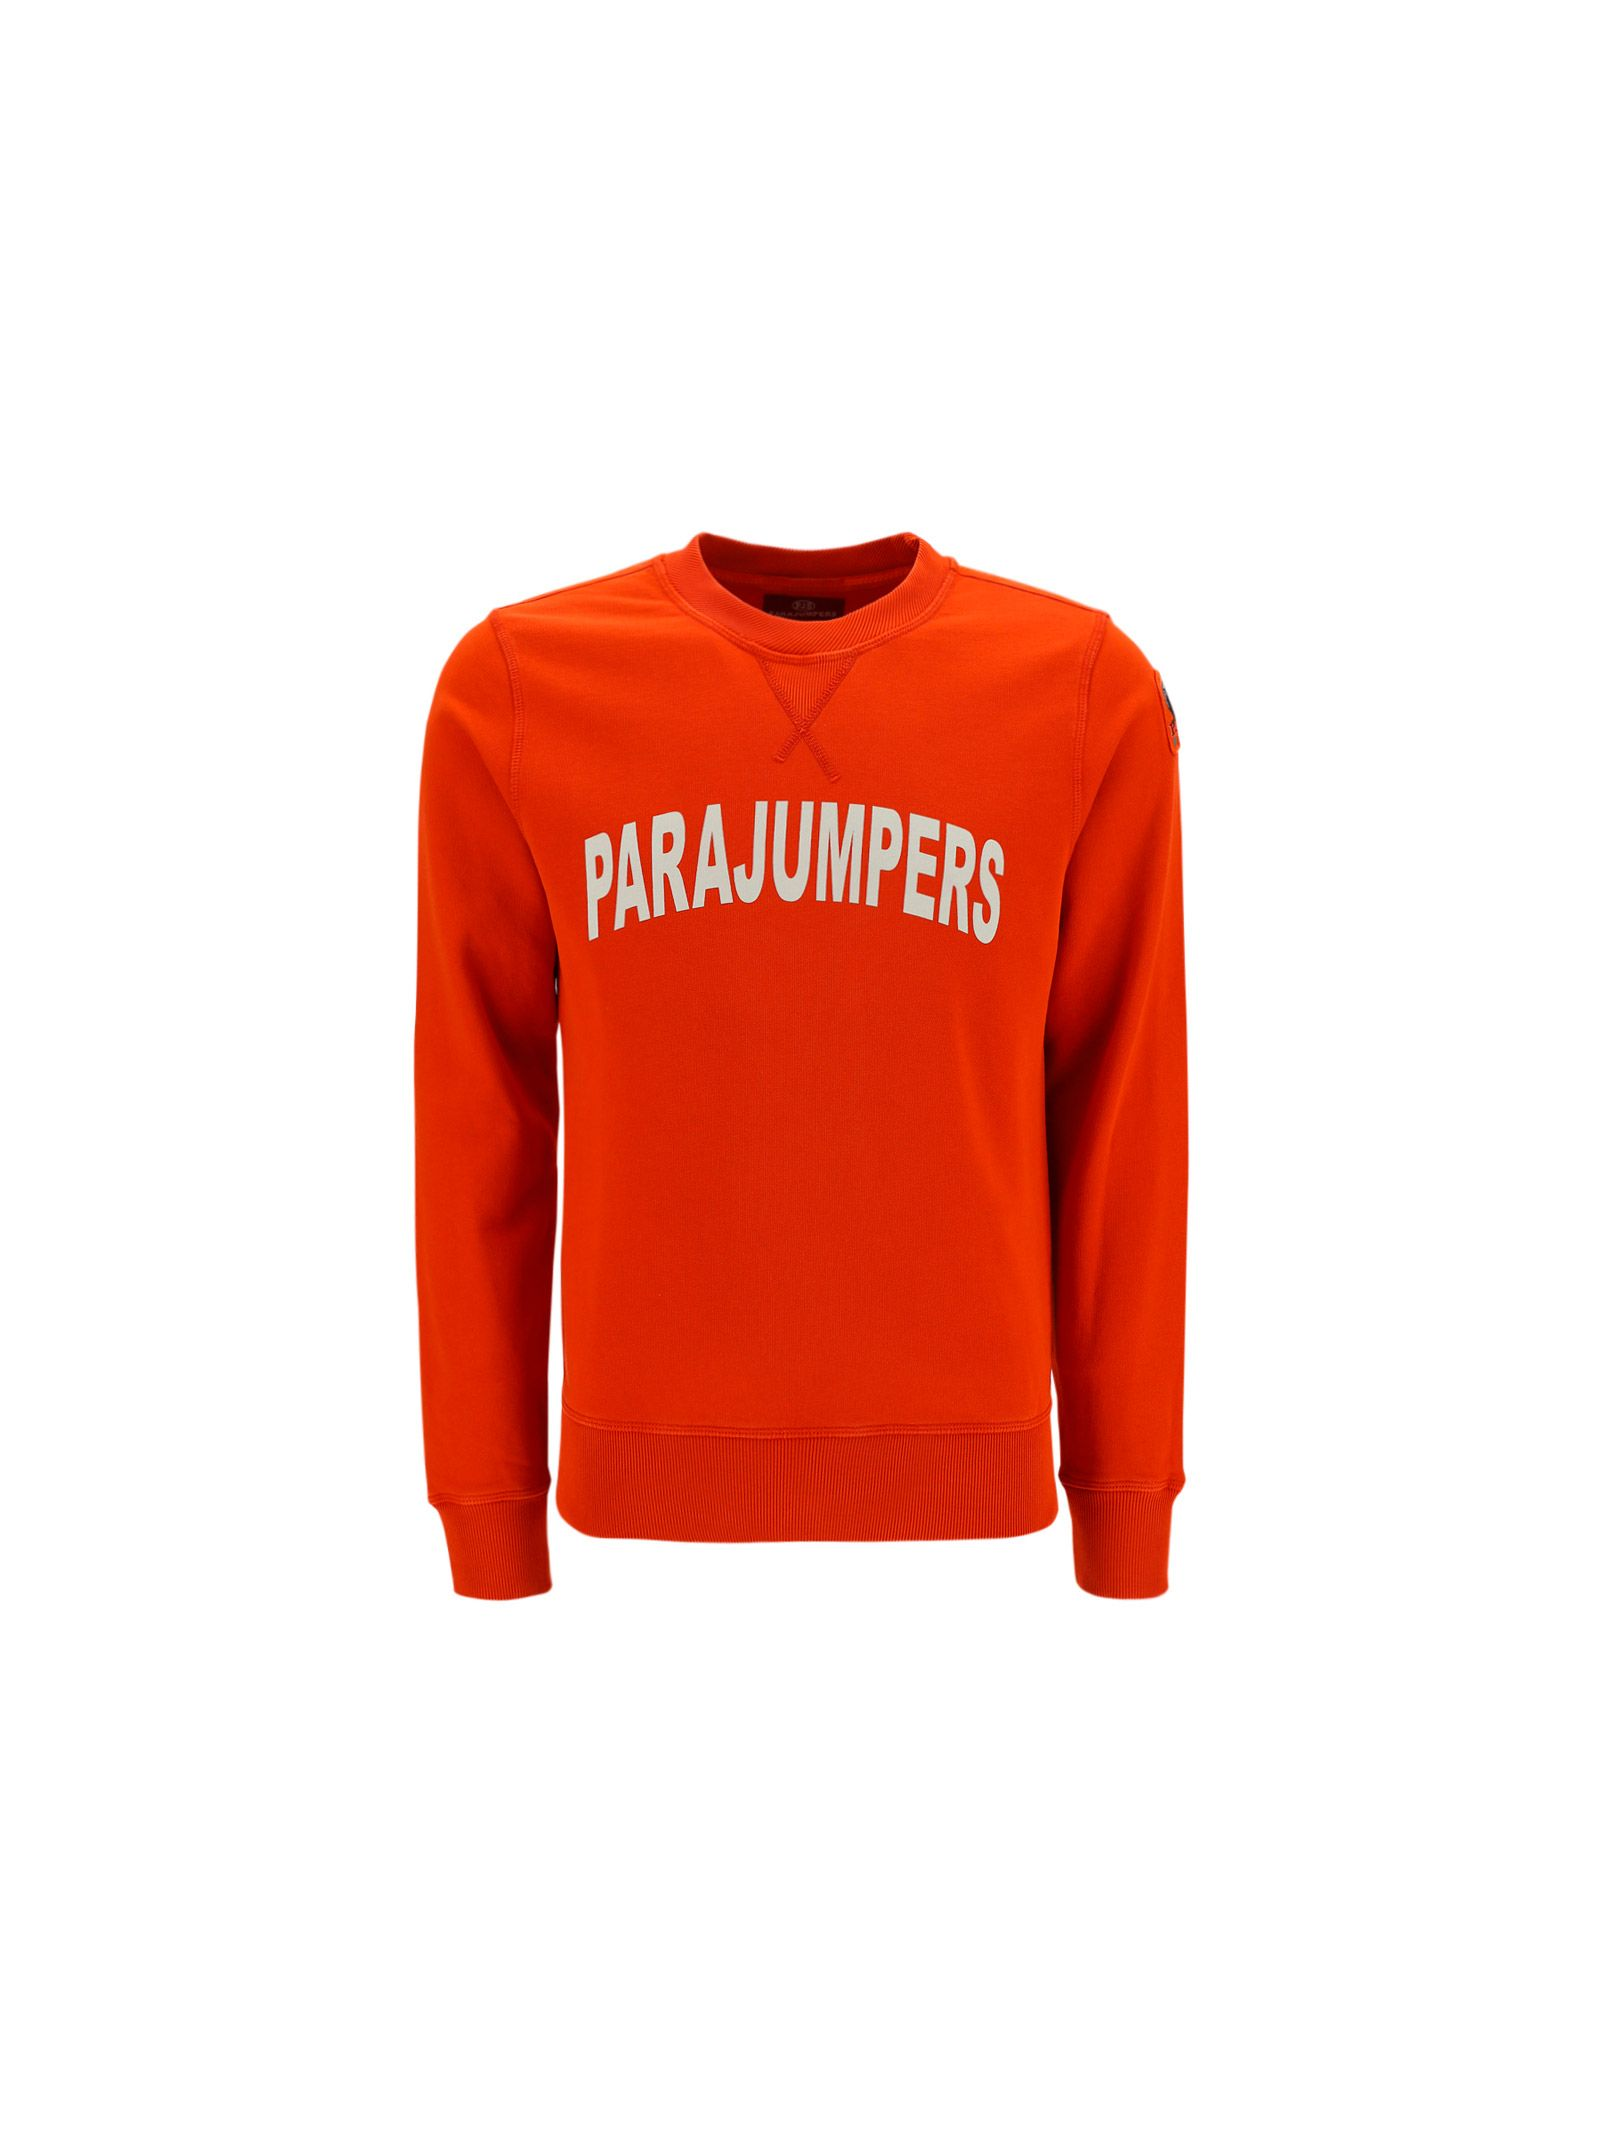 Parajumpers PARAJUMPERS MEN'S ORANGE OTHER MATERIALS SWEATSHIRT